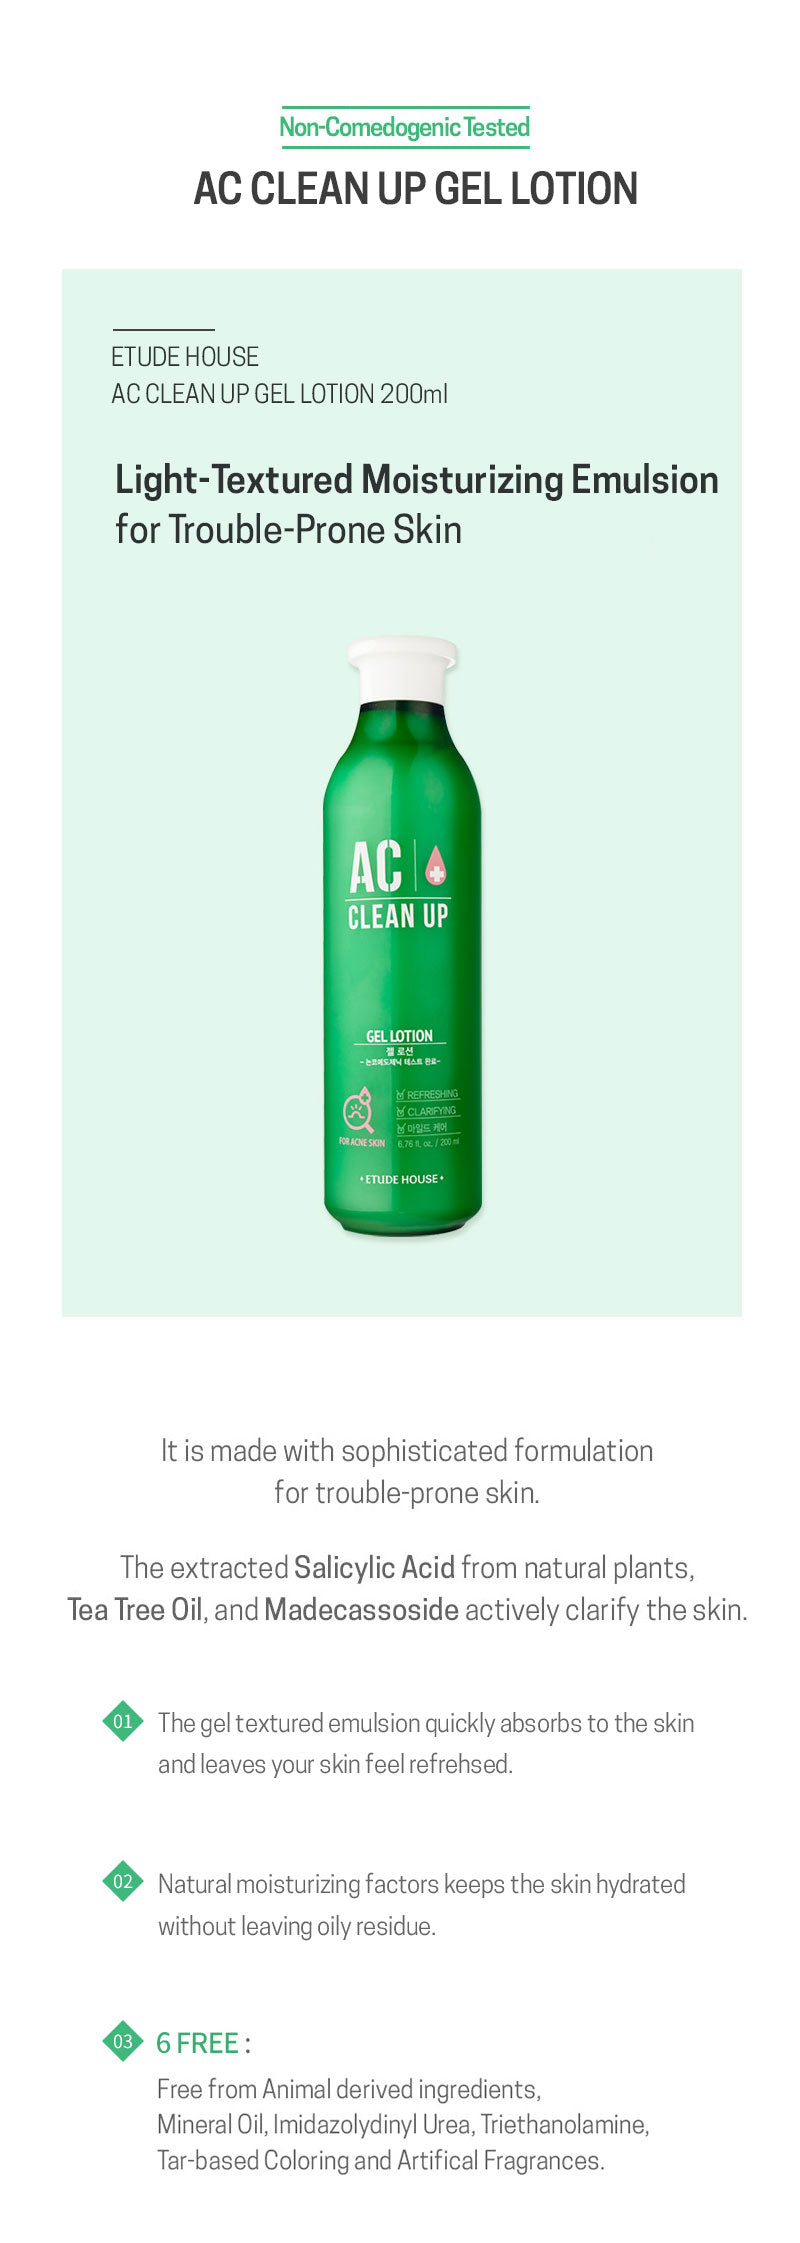 AC-CLEAN-UP-GEL-LOTION-1